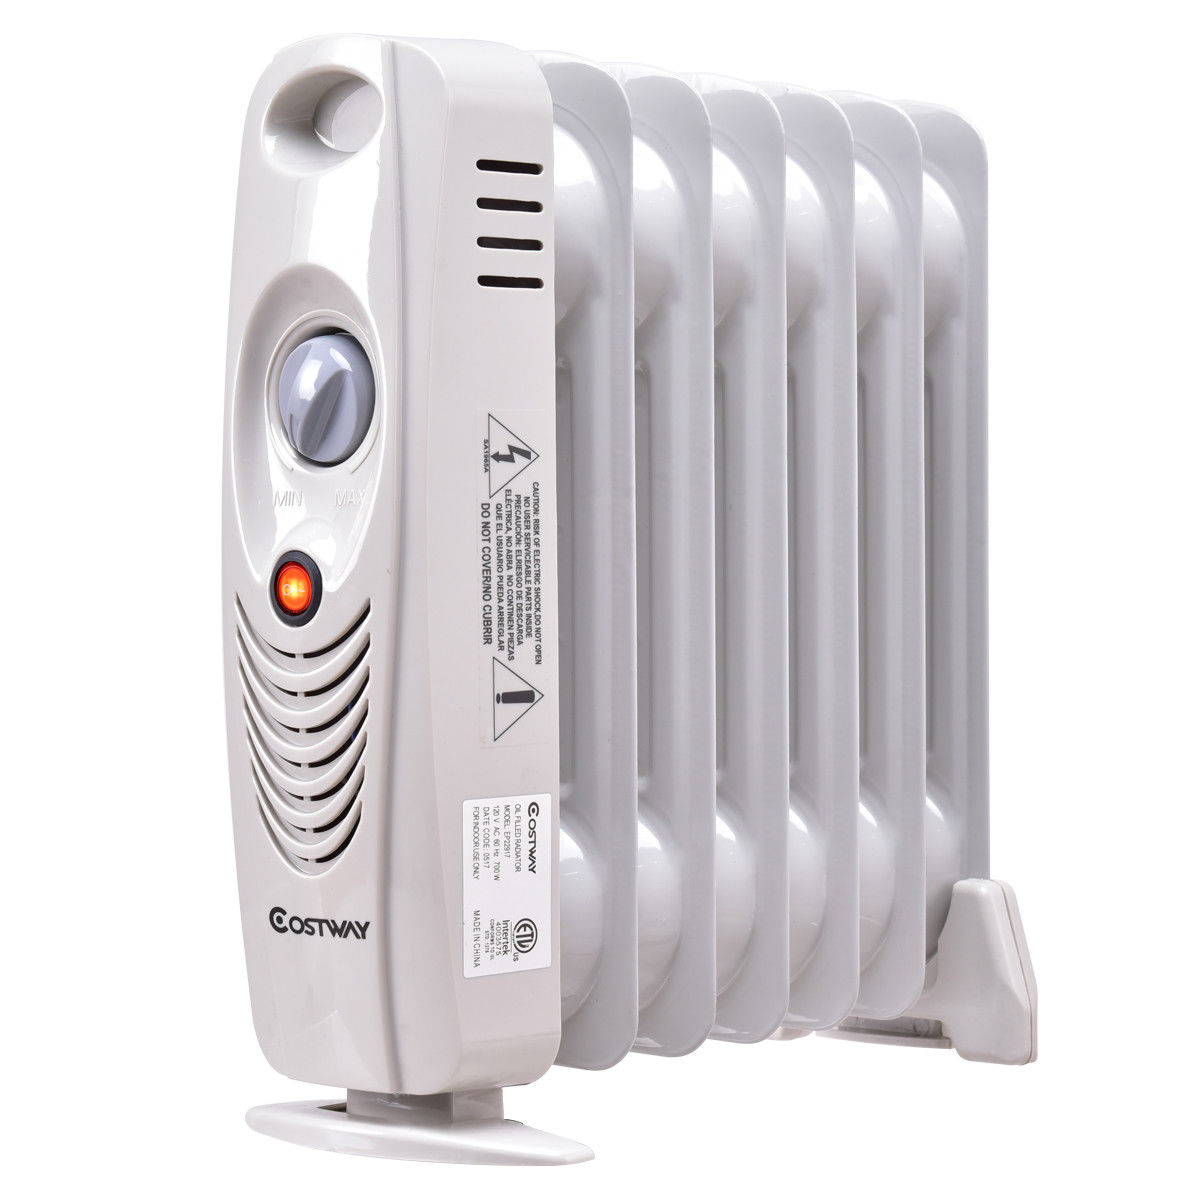 Costway 700W Portable Mini Electric Oil Filled Radiator Heater Safe Room ComforTemp by Costway